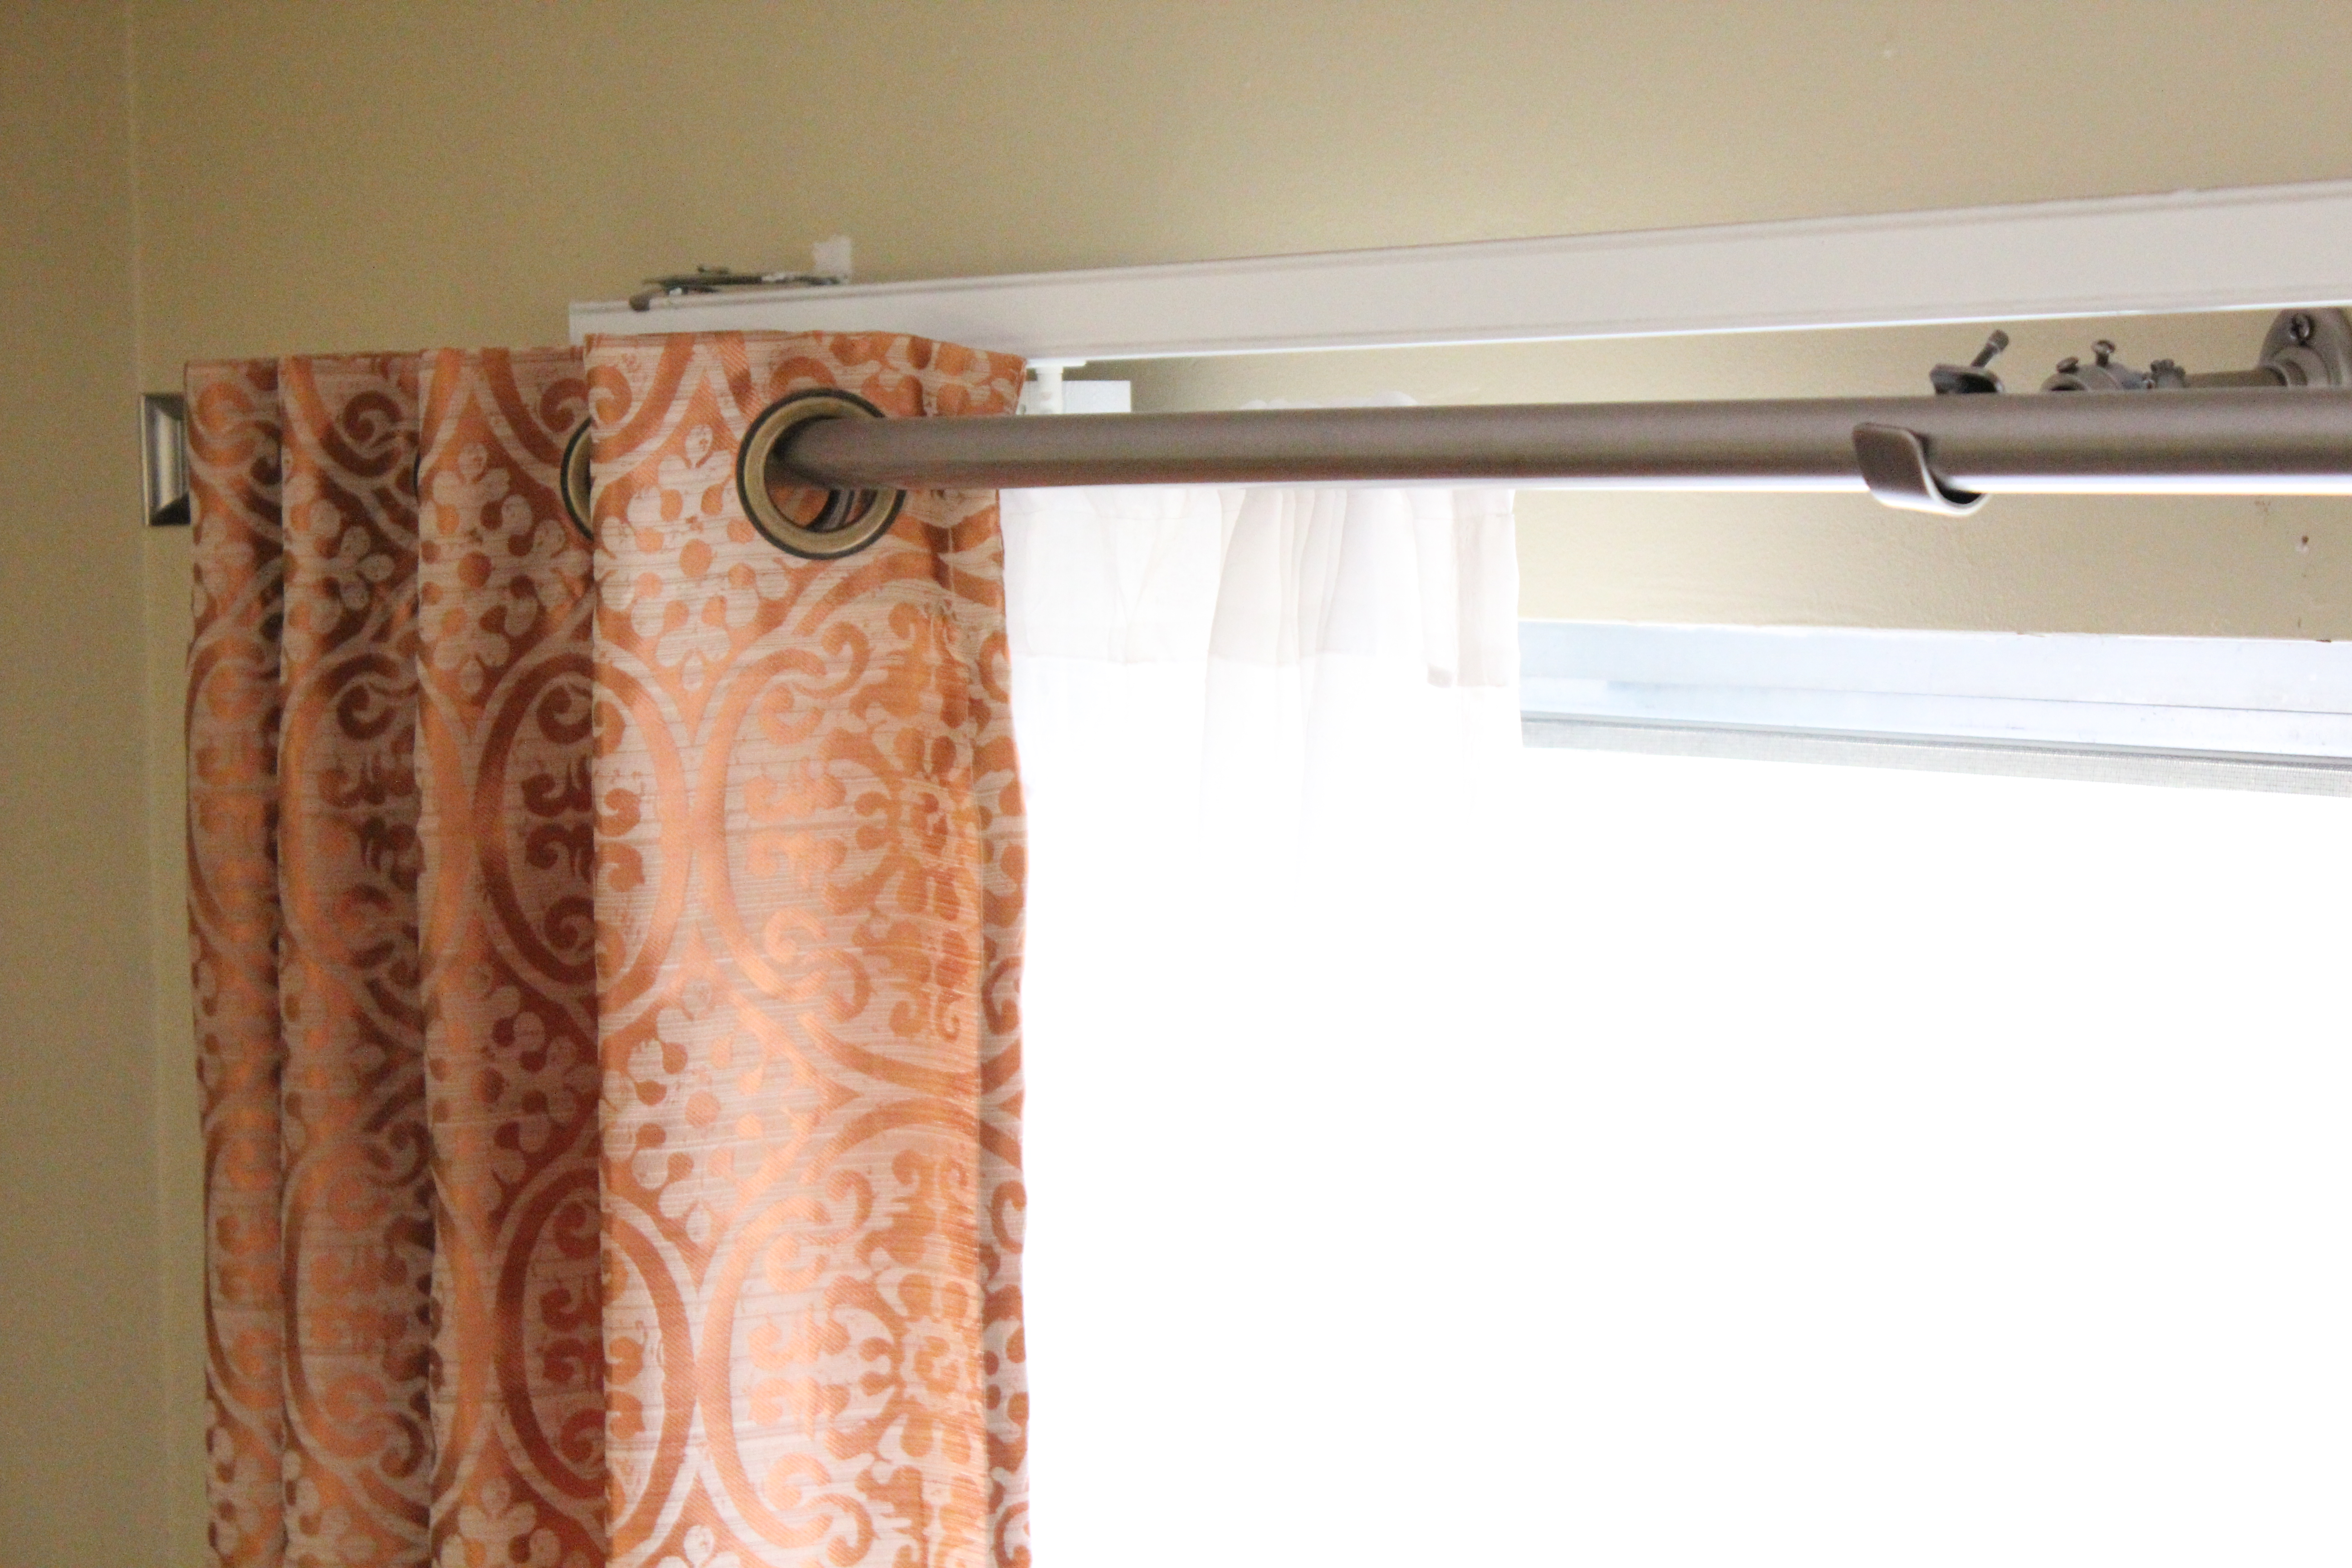 Curtains Over Horizontal Blinds Tulungagung.work